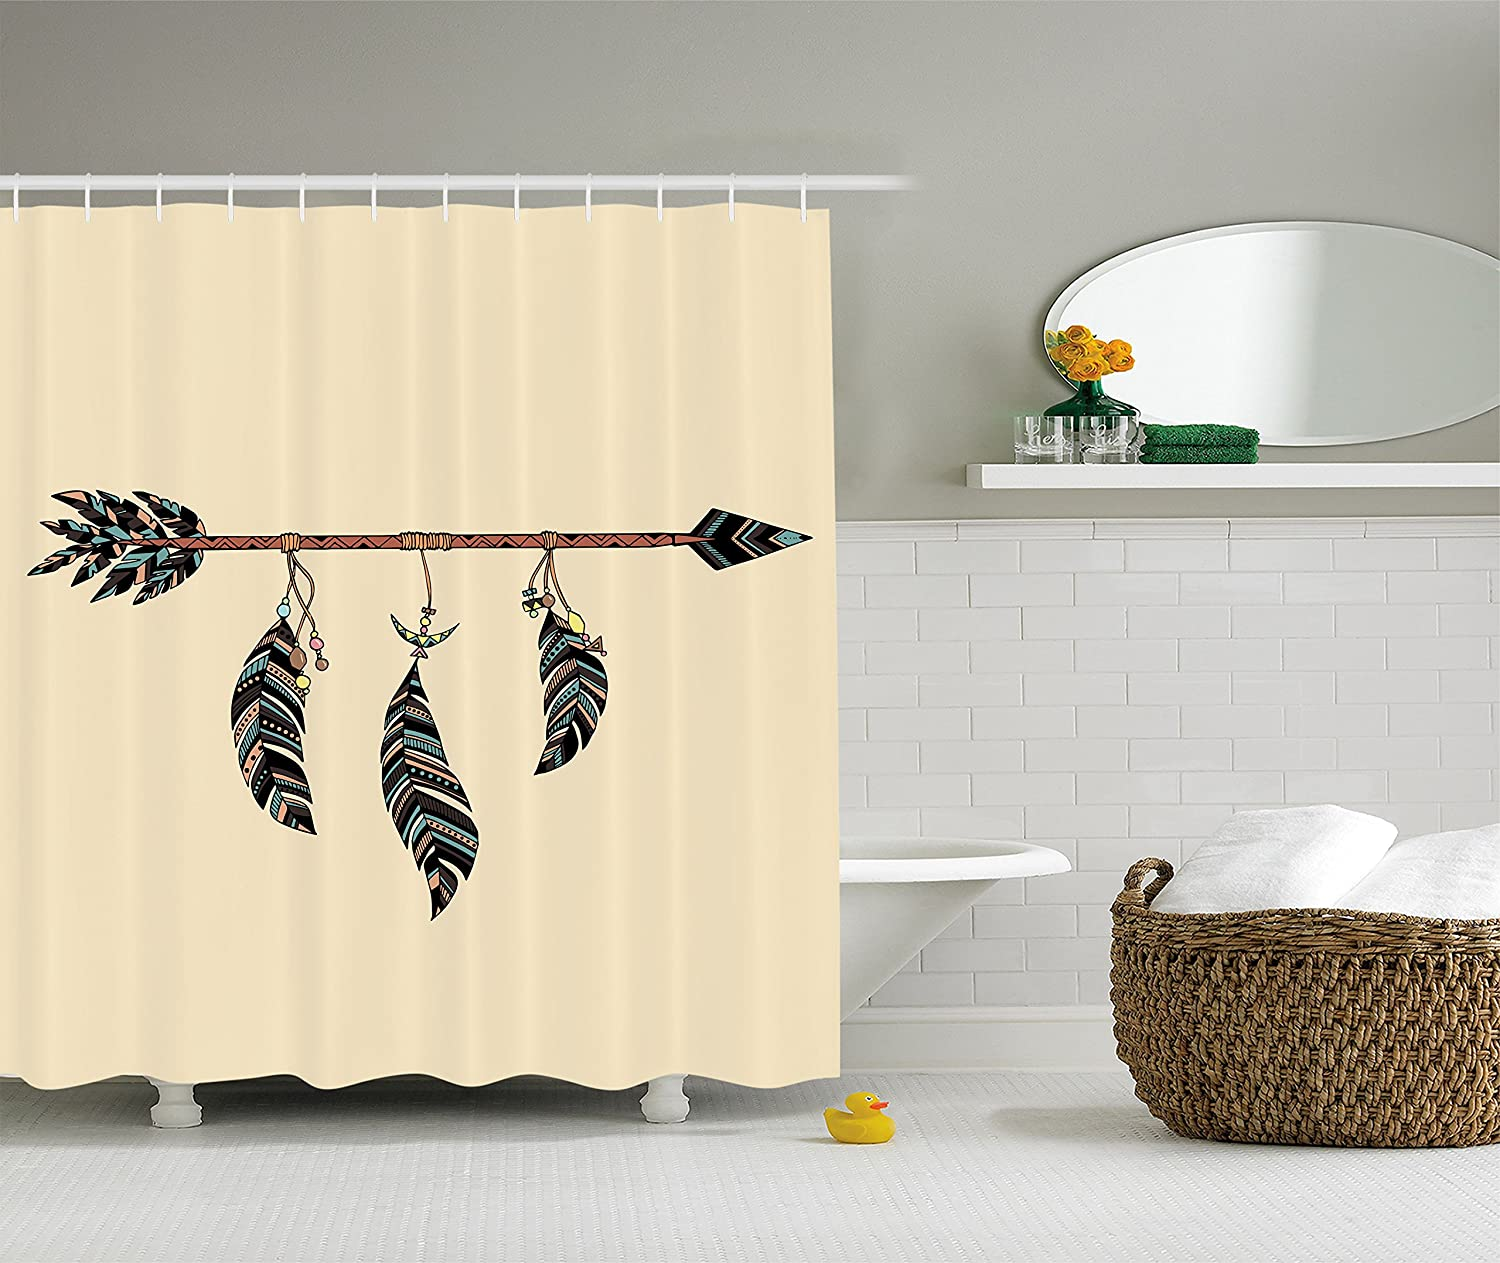 Ambesonne Arrow Decor Collection Cream Blue Brown 75 Inches Long Polyester Fabric Bathroom Shower Curtain Arrow in Ethnical Pattern with Feathers Decorative Native Tribal Print